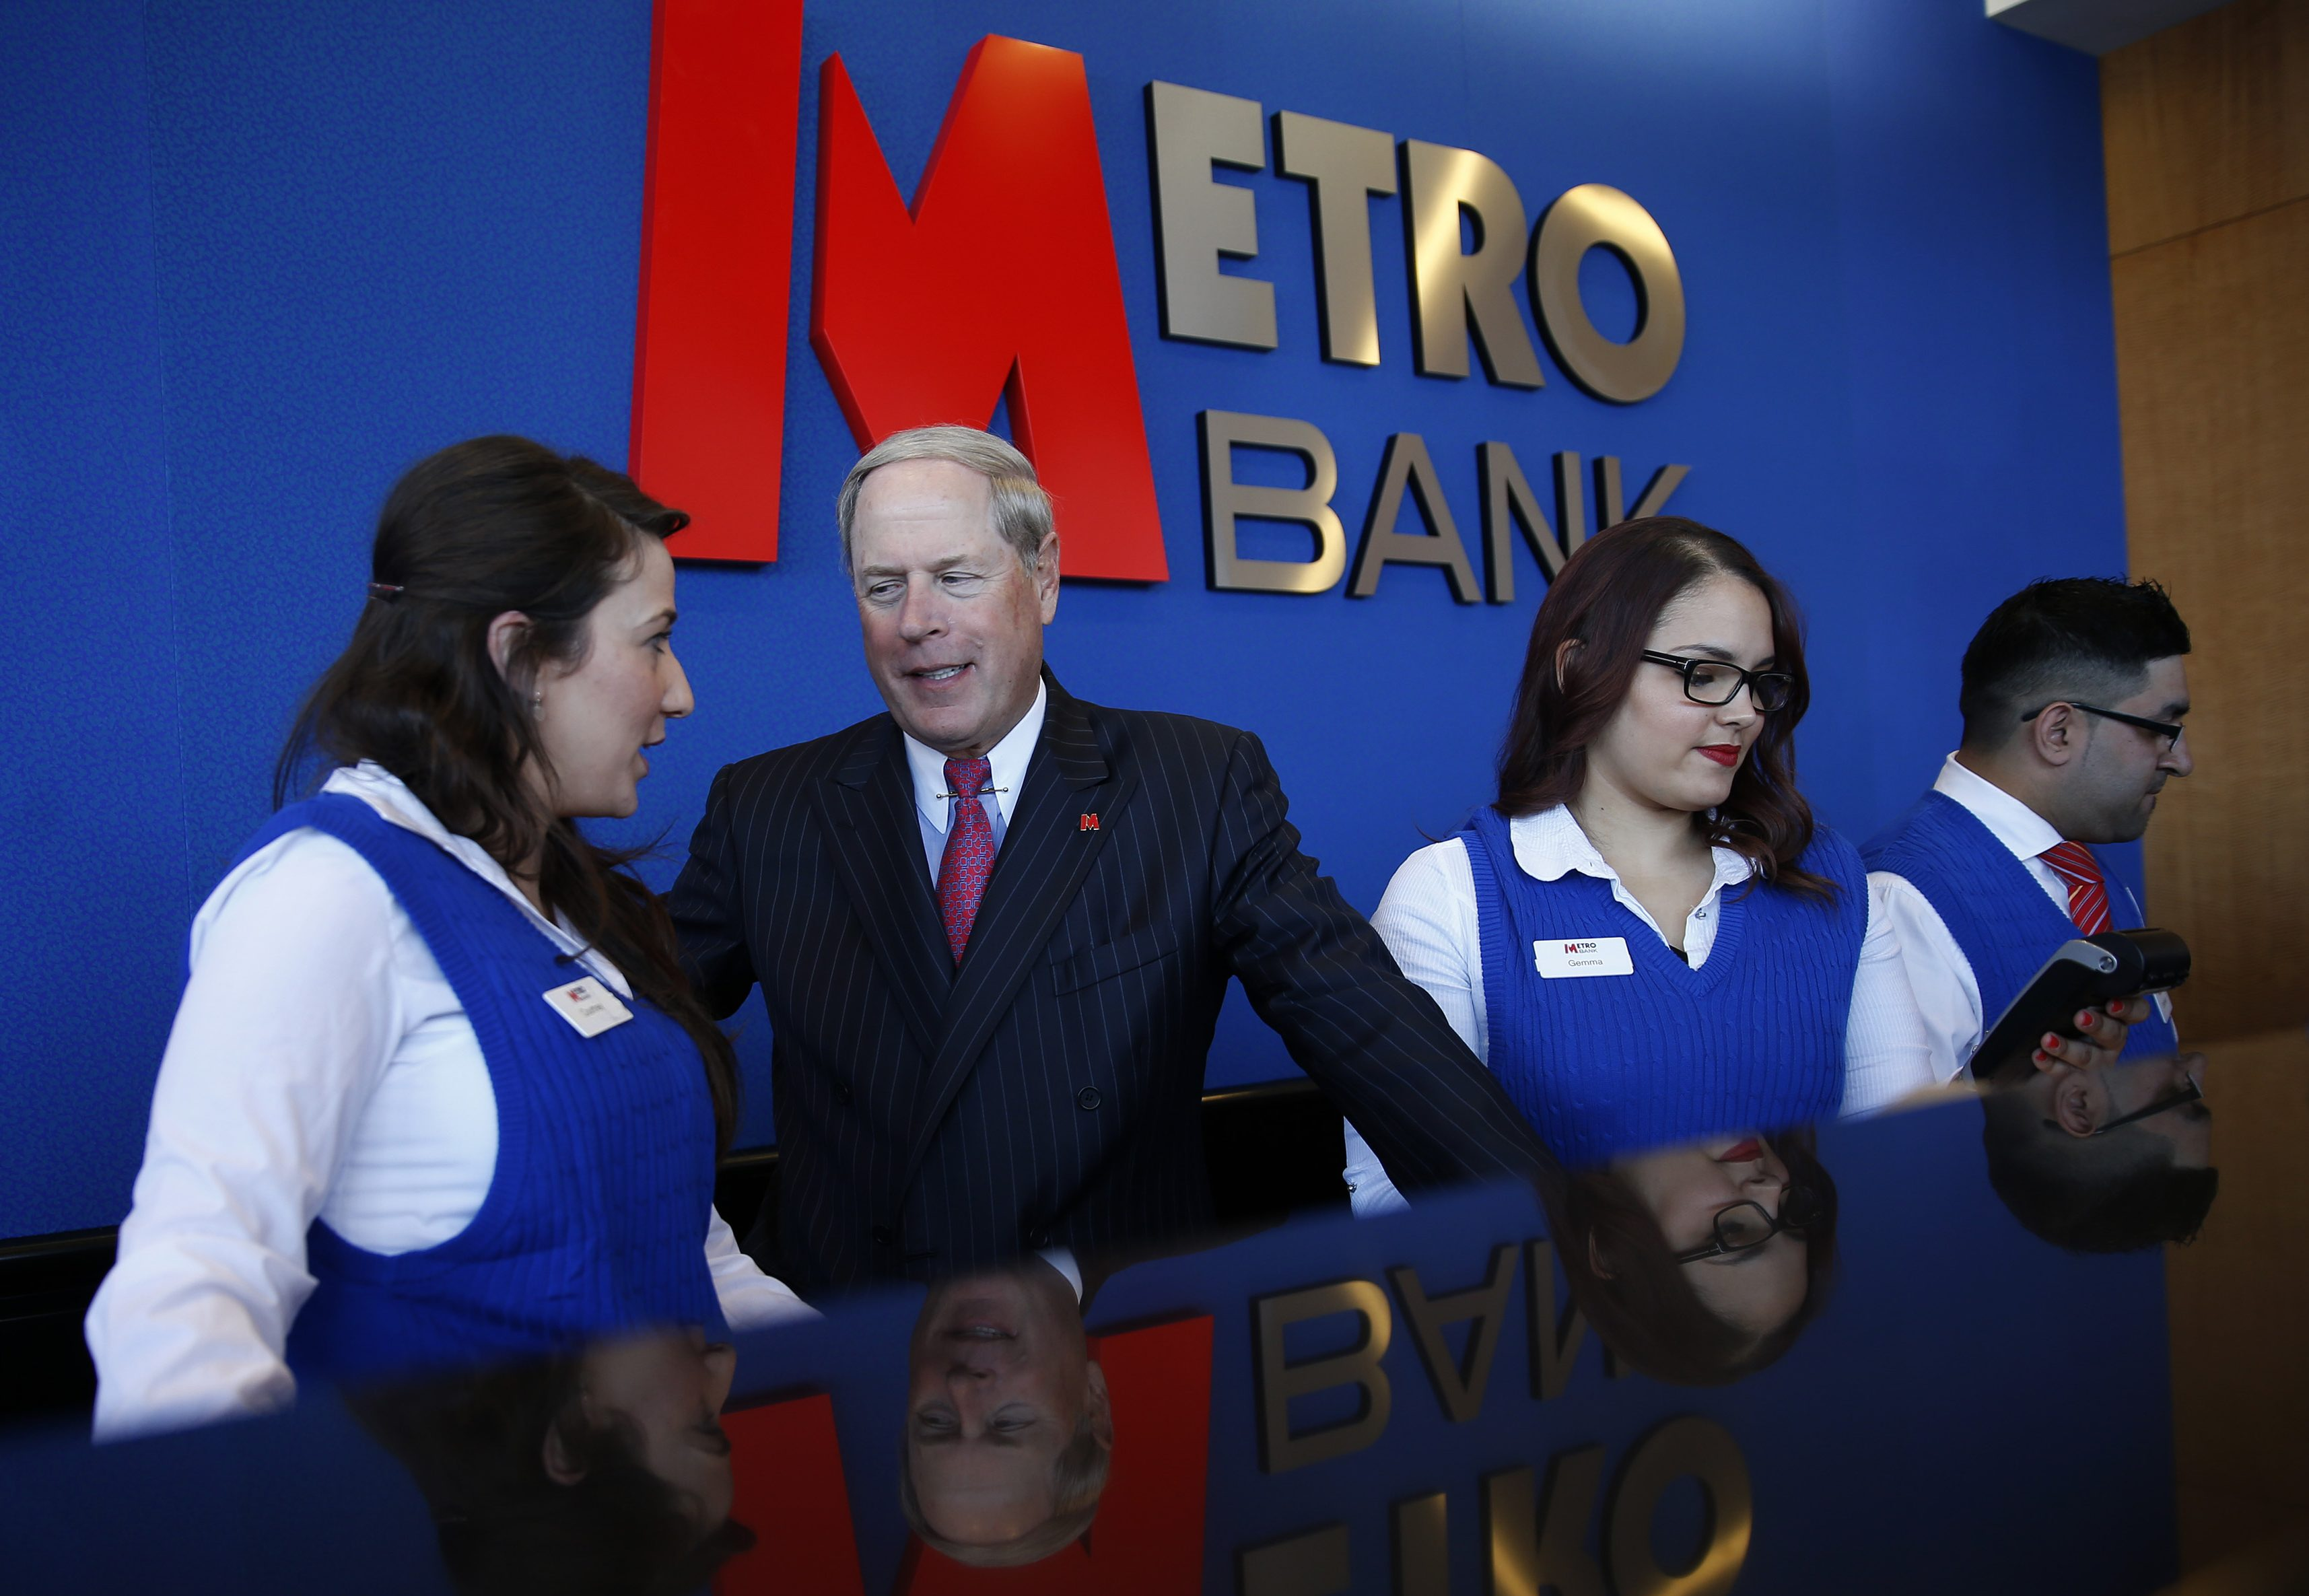 Metro Bank shores up finances, prepares for tough…